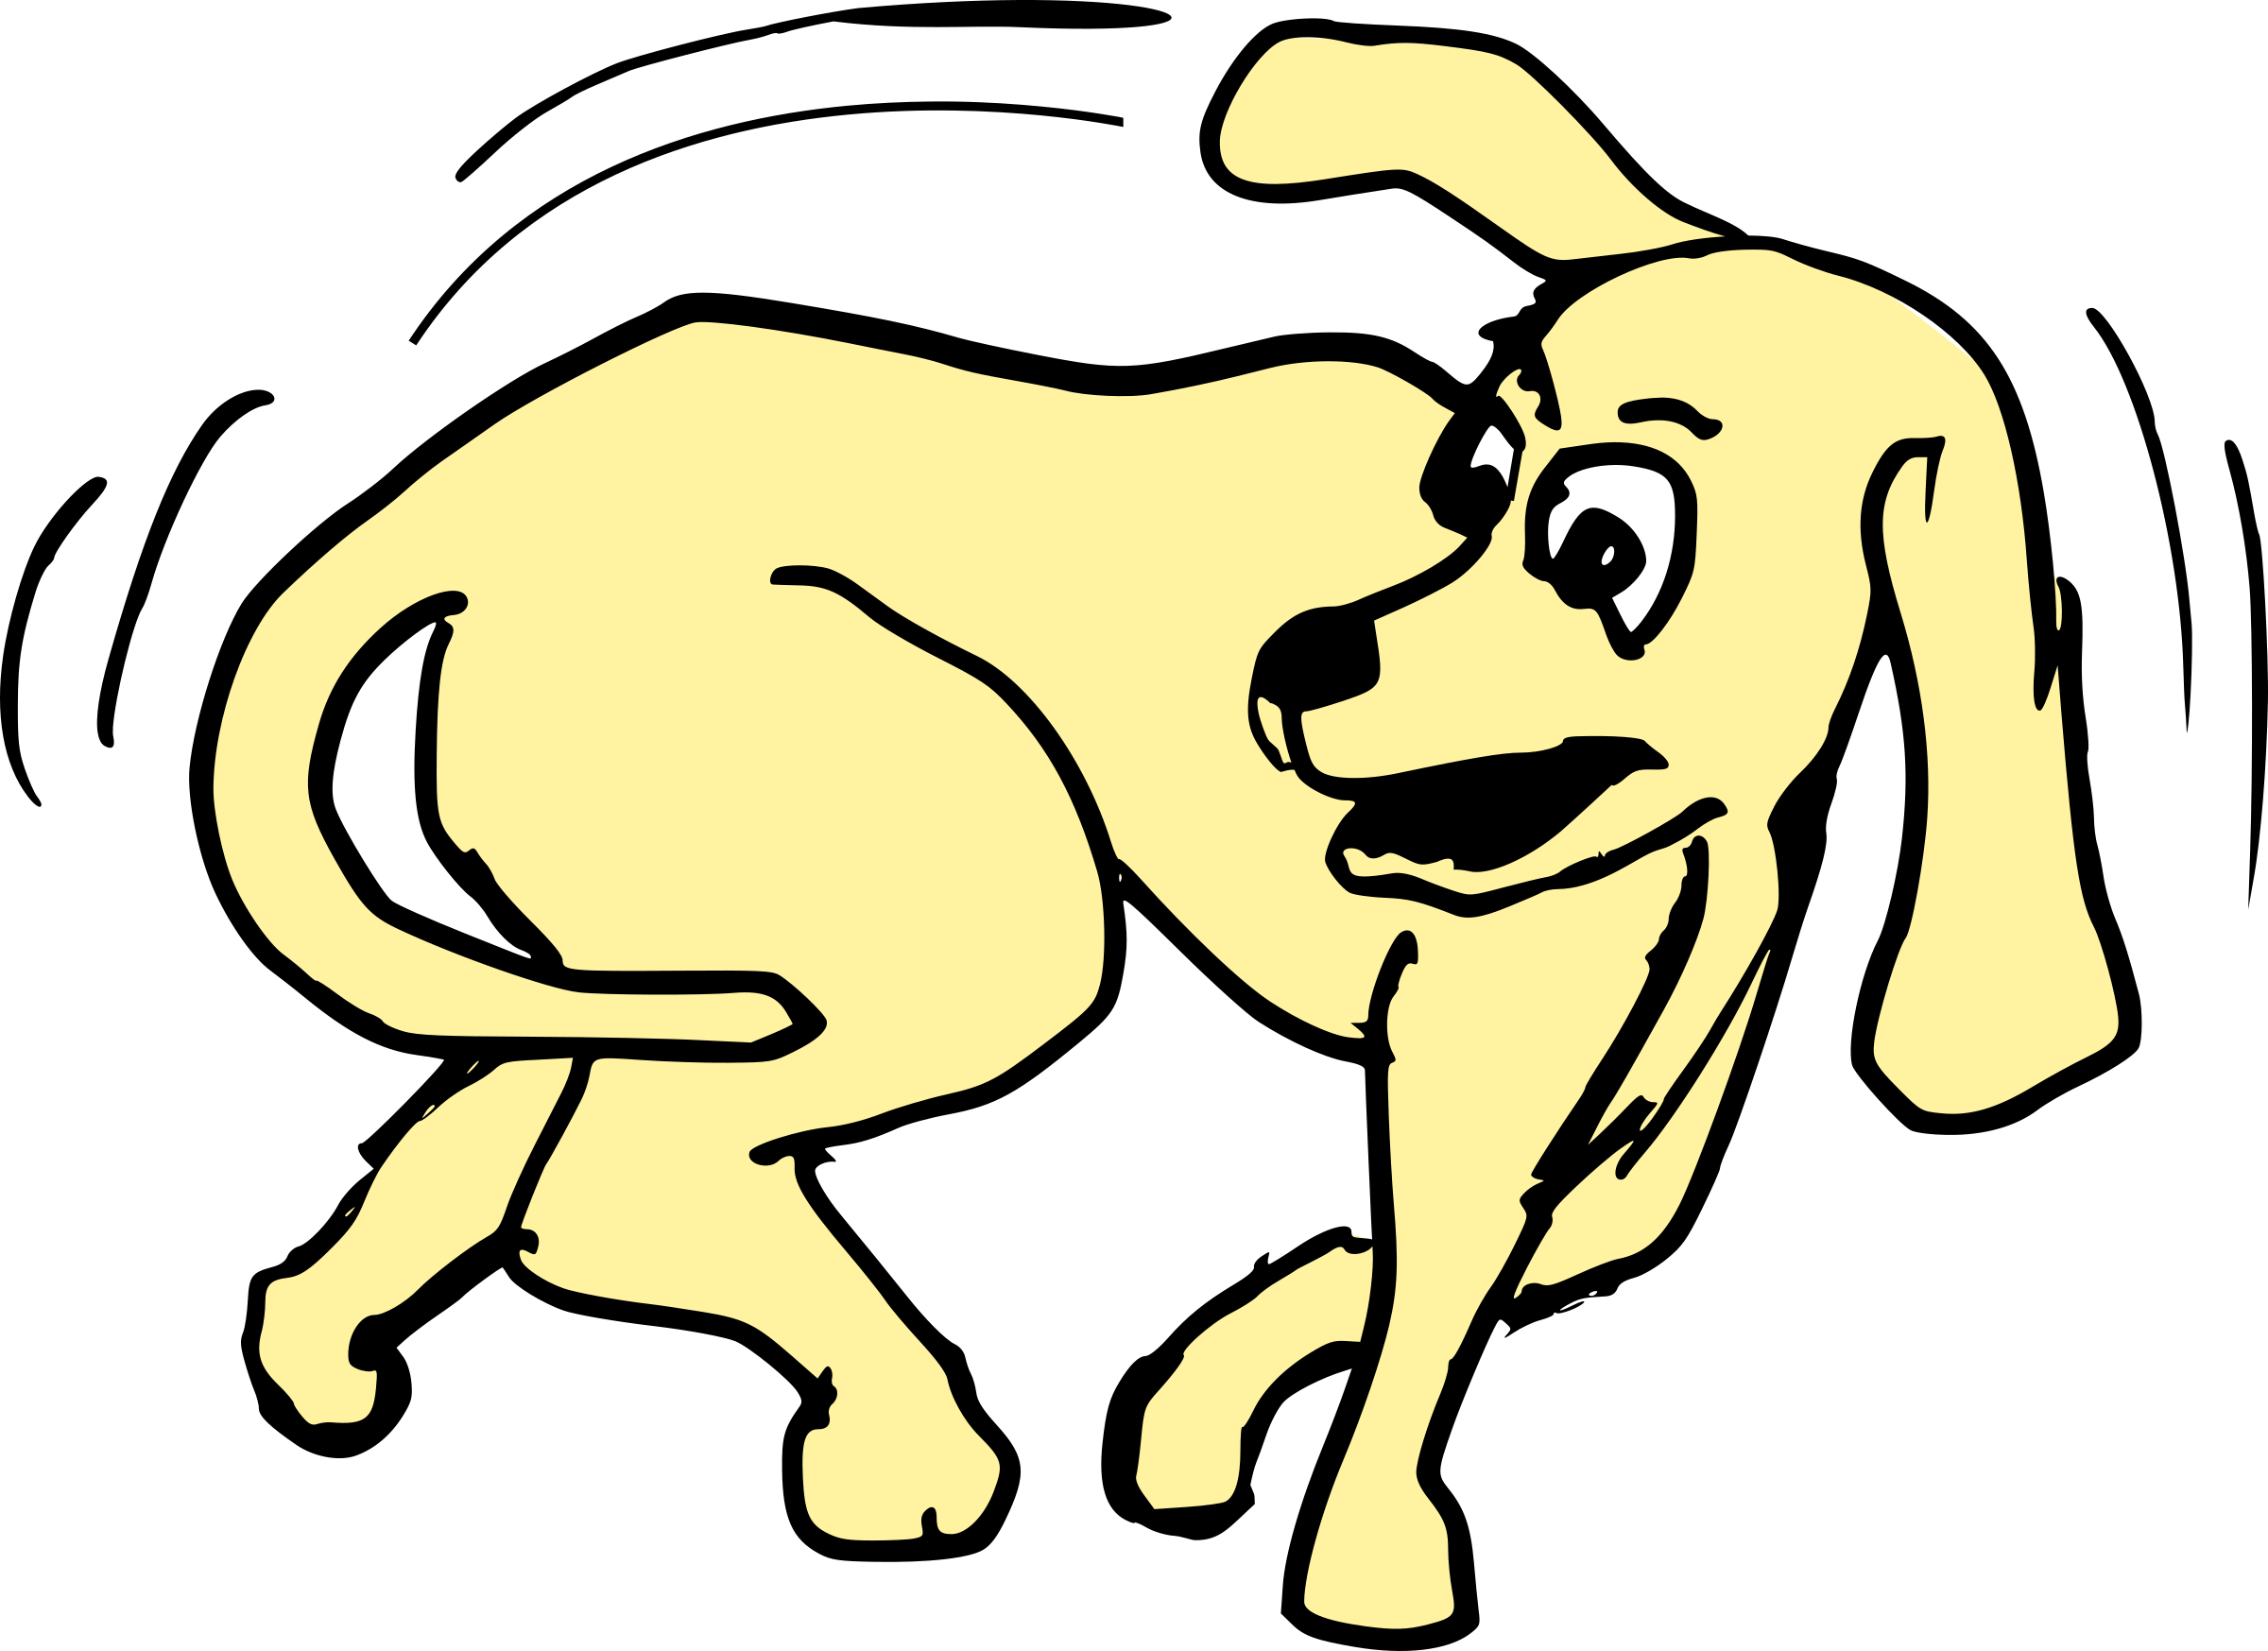 Dog chasing clipart image freeuse download Clipart - Agitated Dog 5 image freeuse download